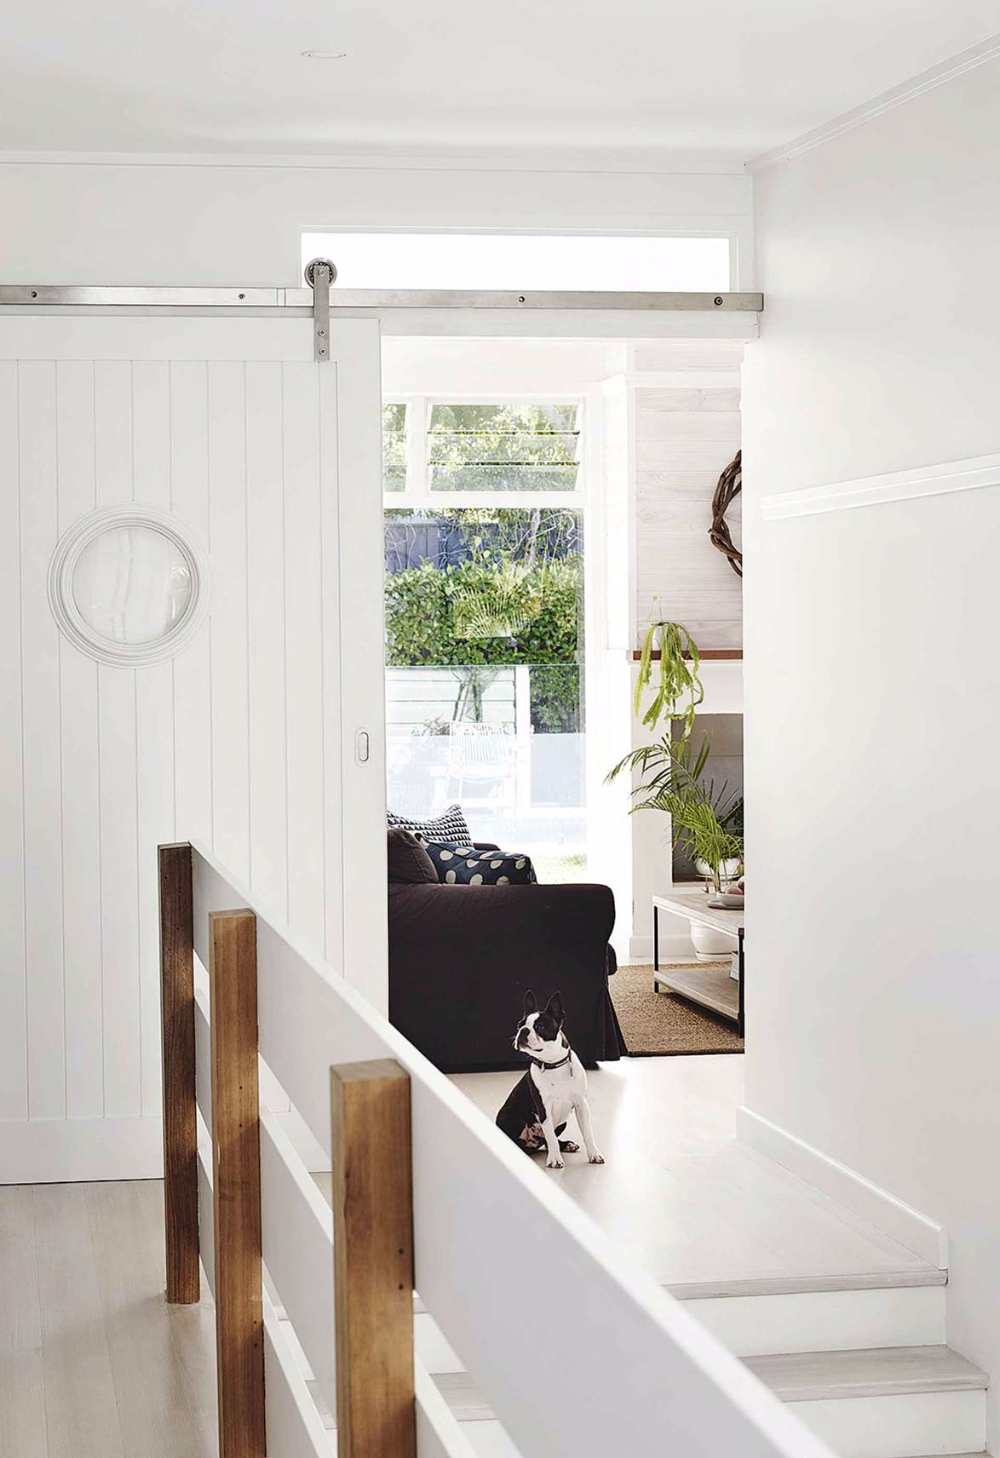 15 barn door ideas and why we're obsessed with them | Home ...